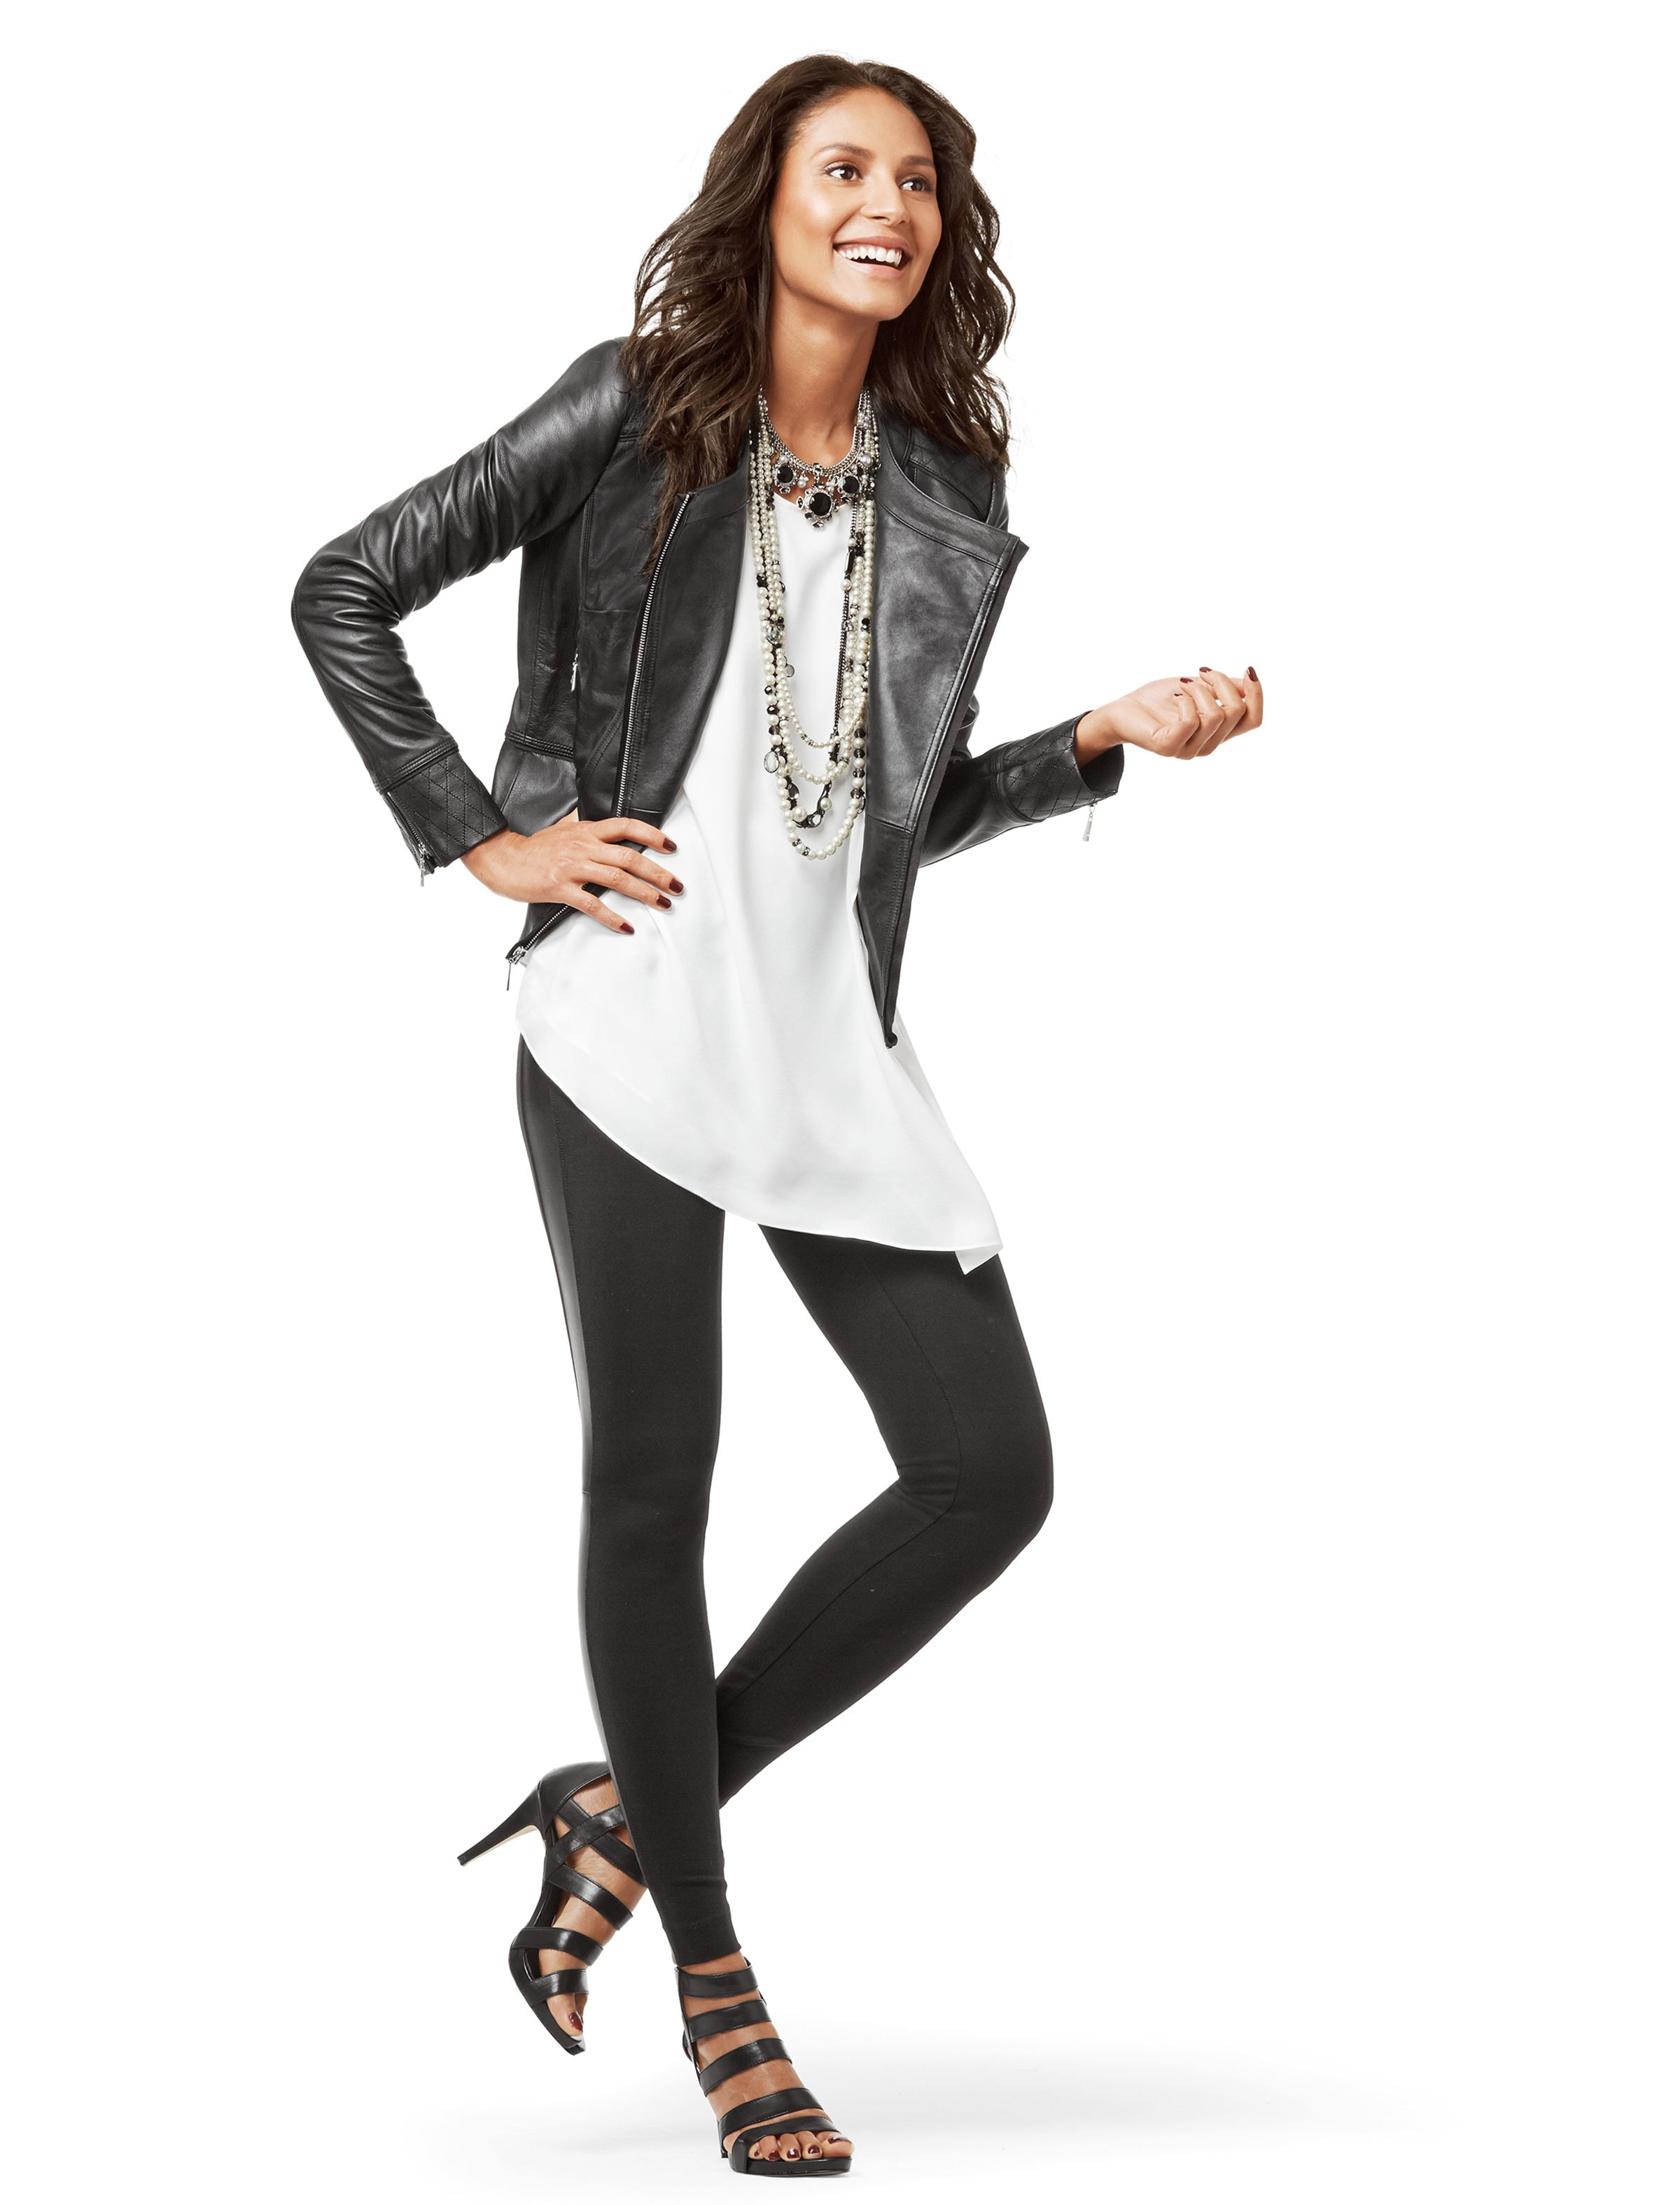 6a38eda860c6ce Dress up your leggings with a silk tunic and chic leather jacket ...